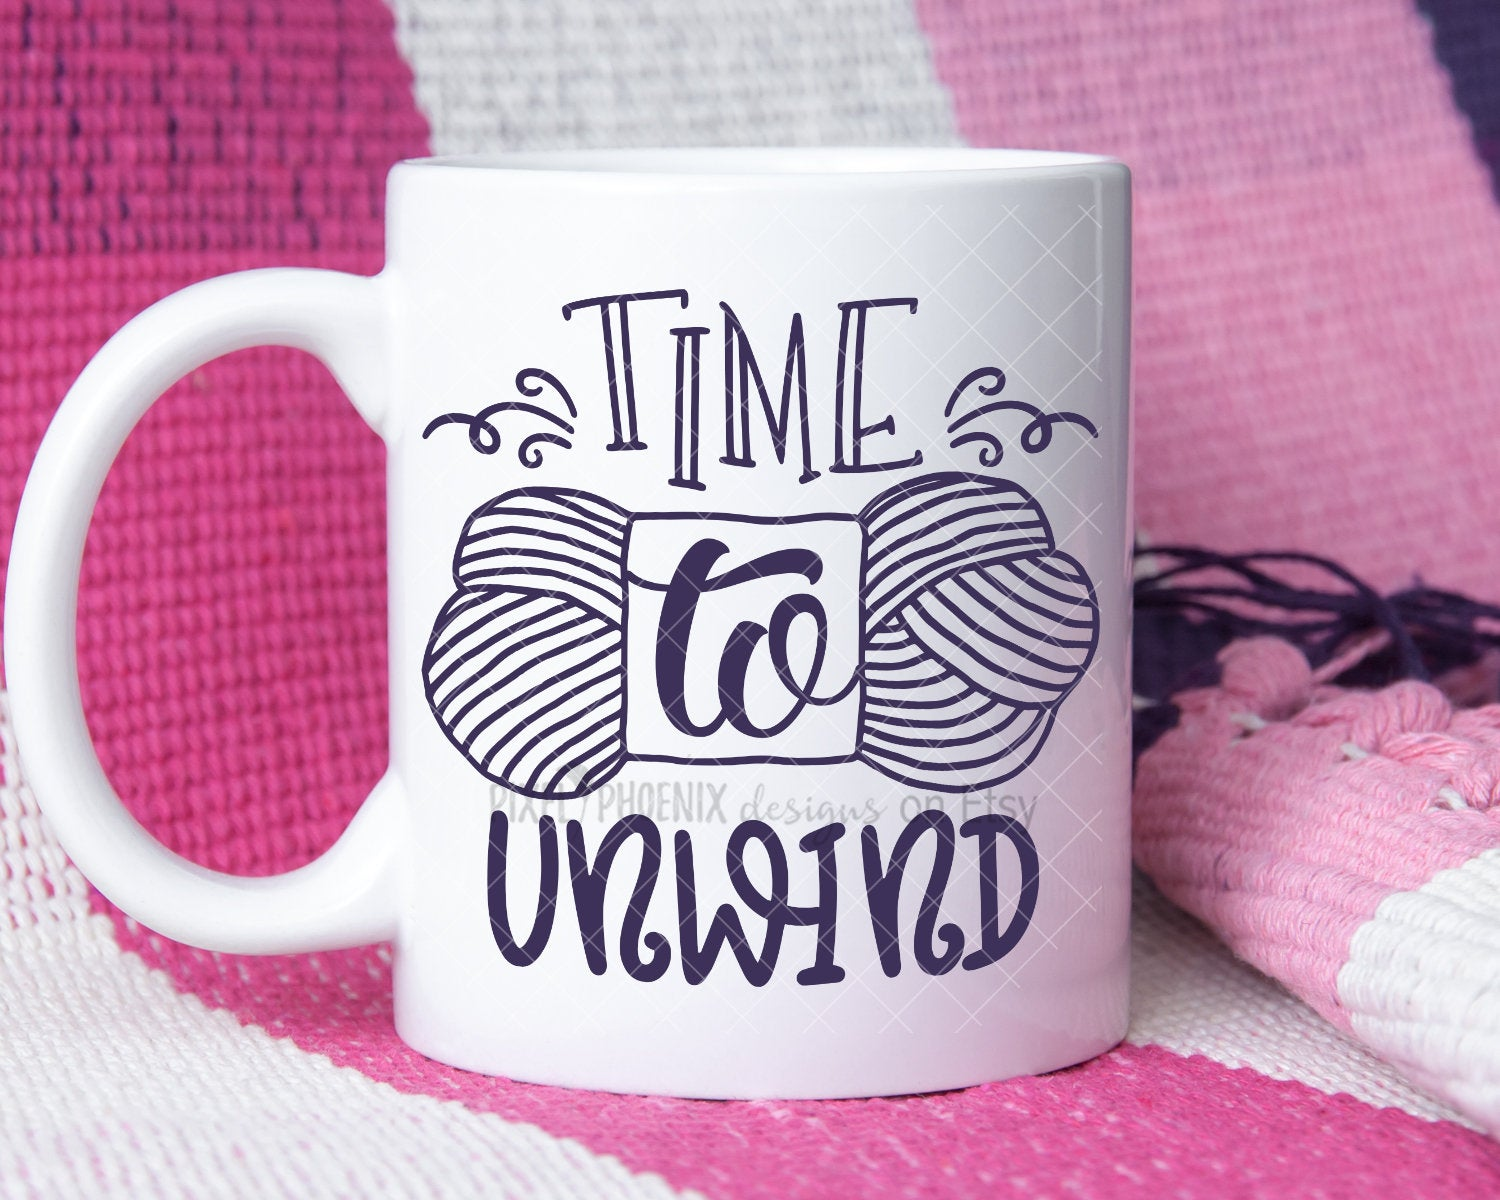 Time to Unwind SVG files for Cricut quotes, knitting quote svg designs, cut files for Silhouette, crochet svg files, yarn svg for mugs, dxf